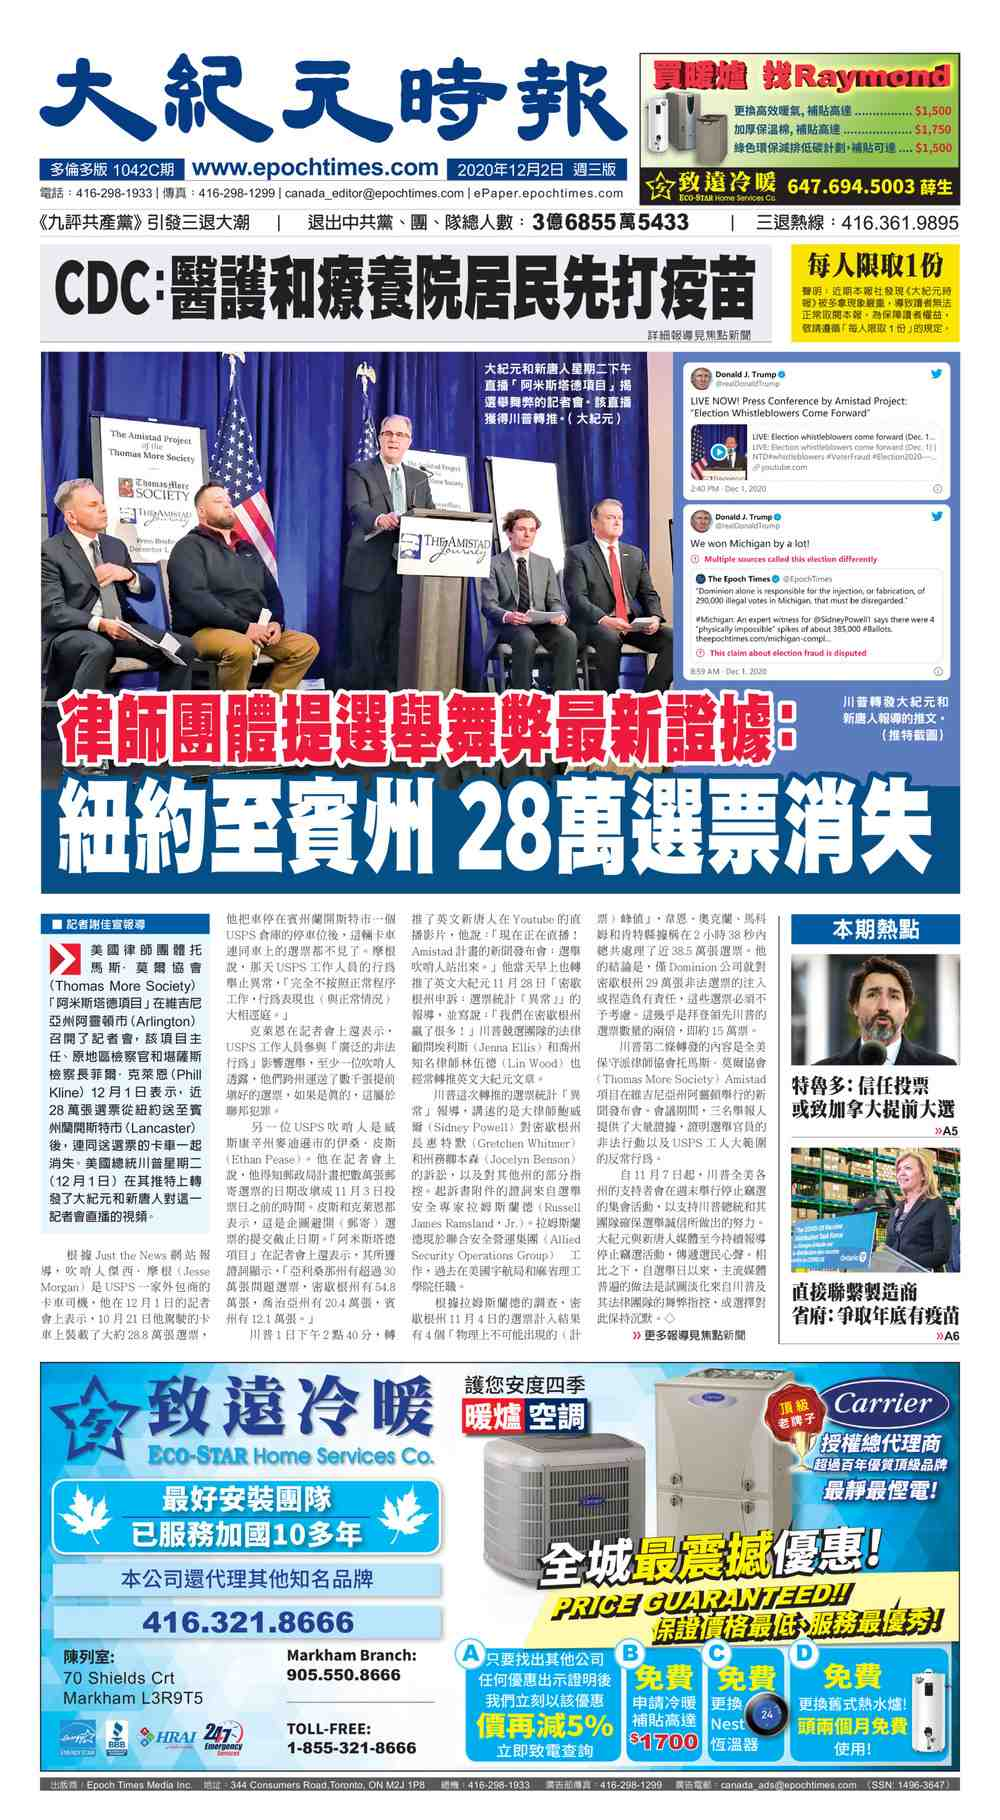 Toronto 20201202 a01 frontpage c s250x